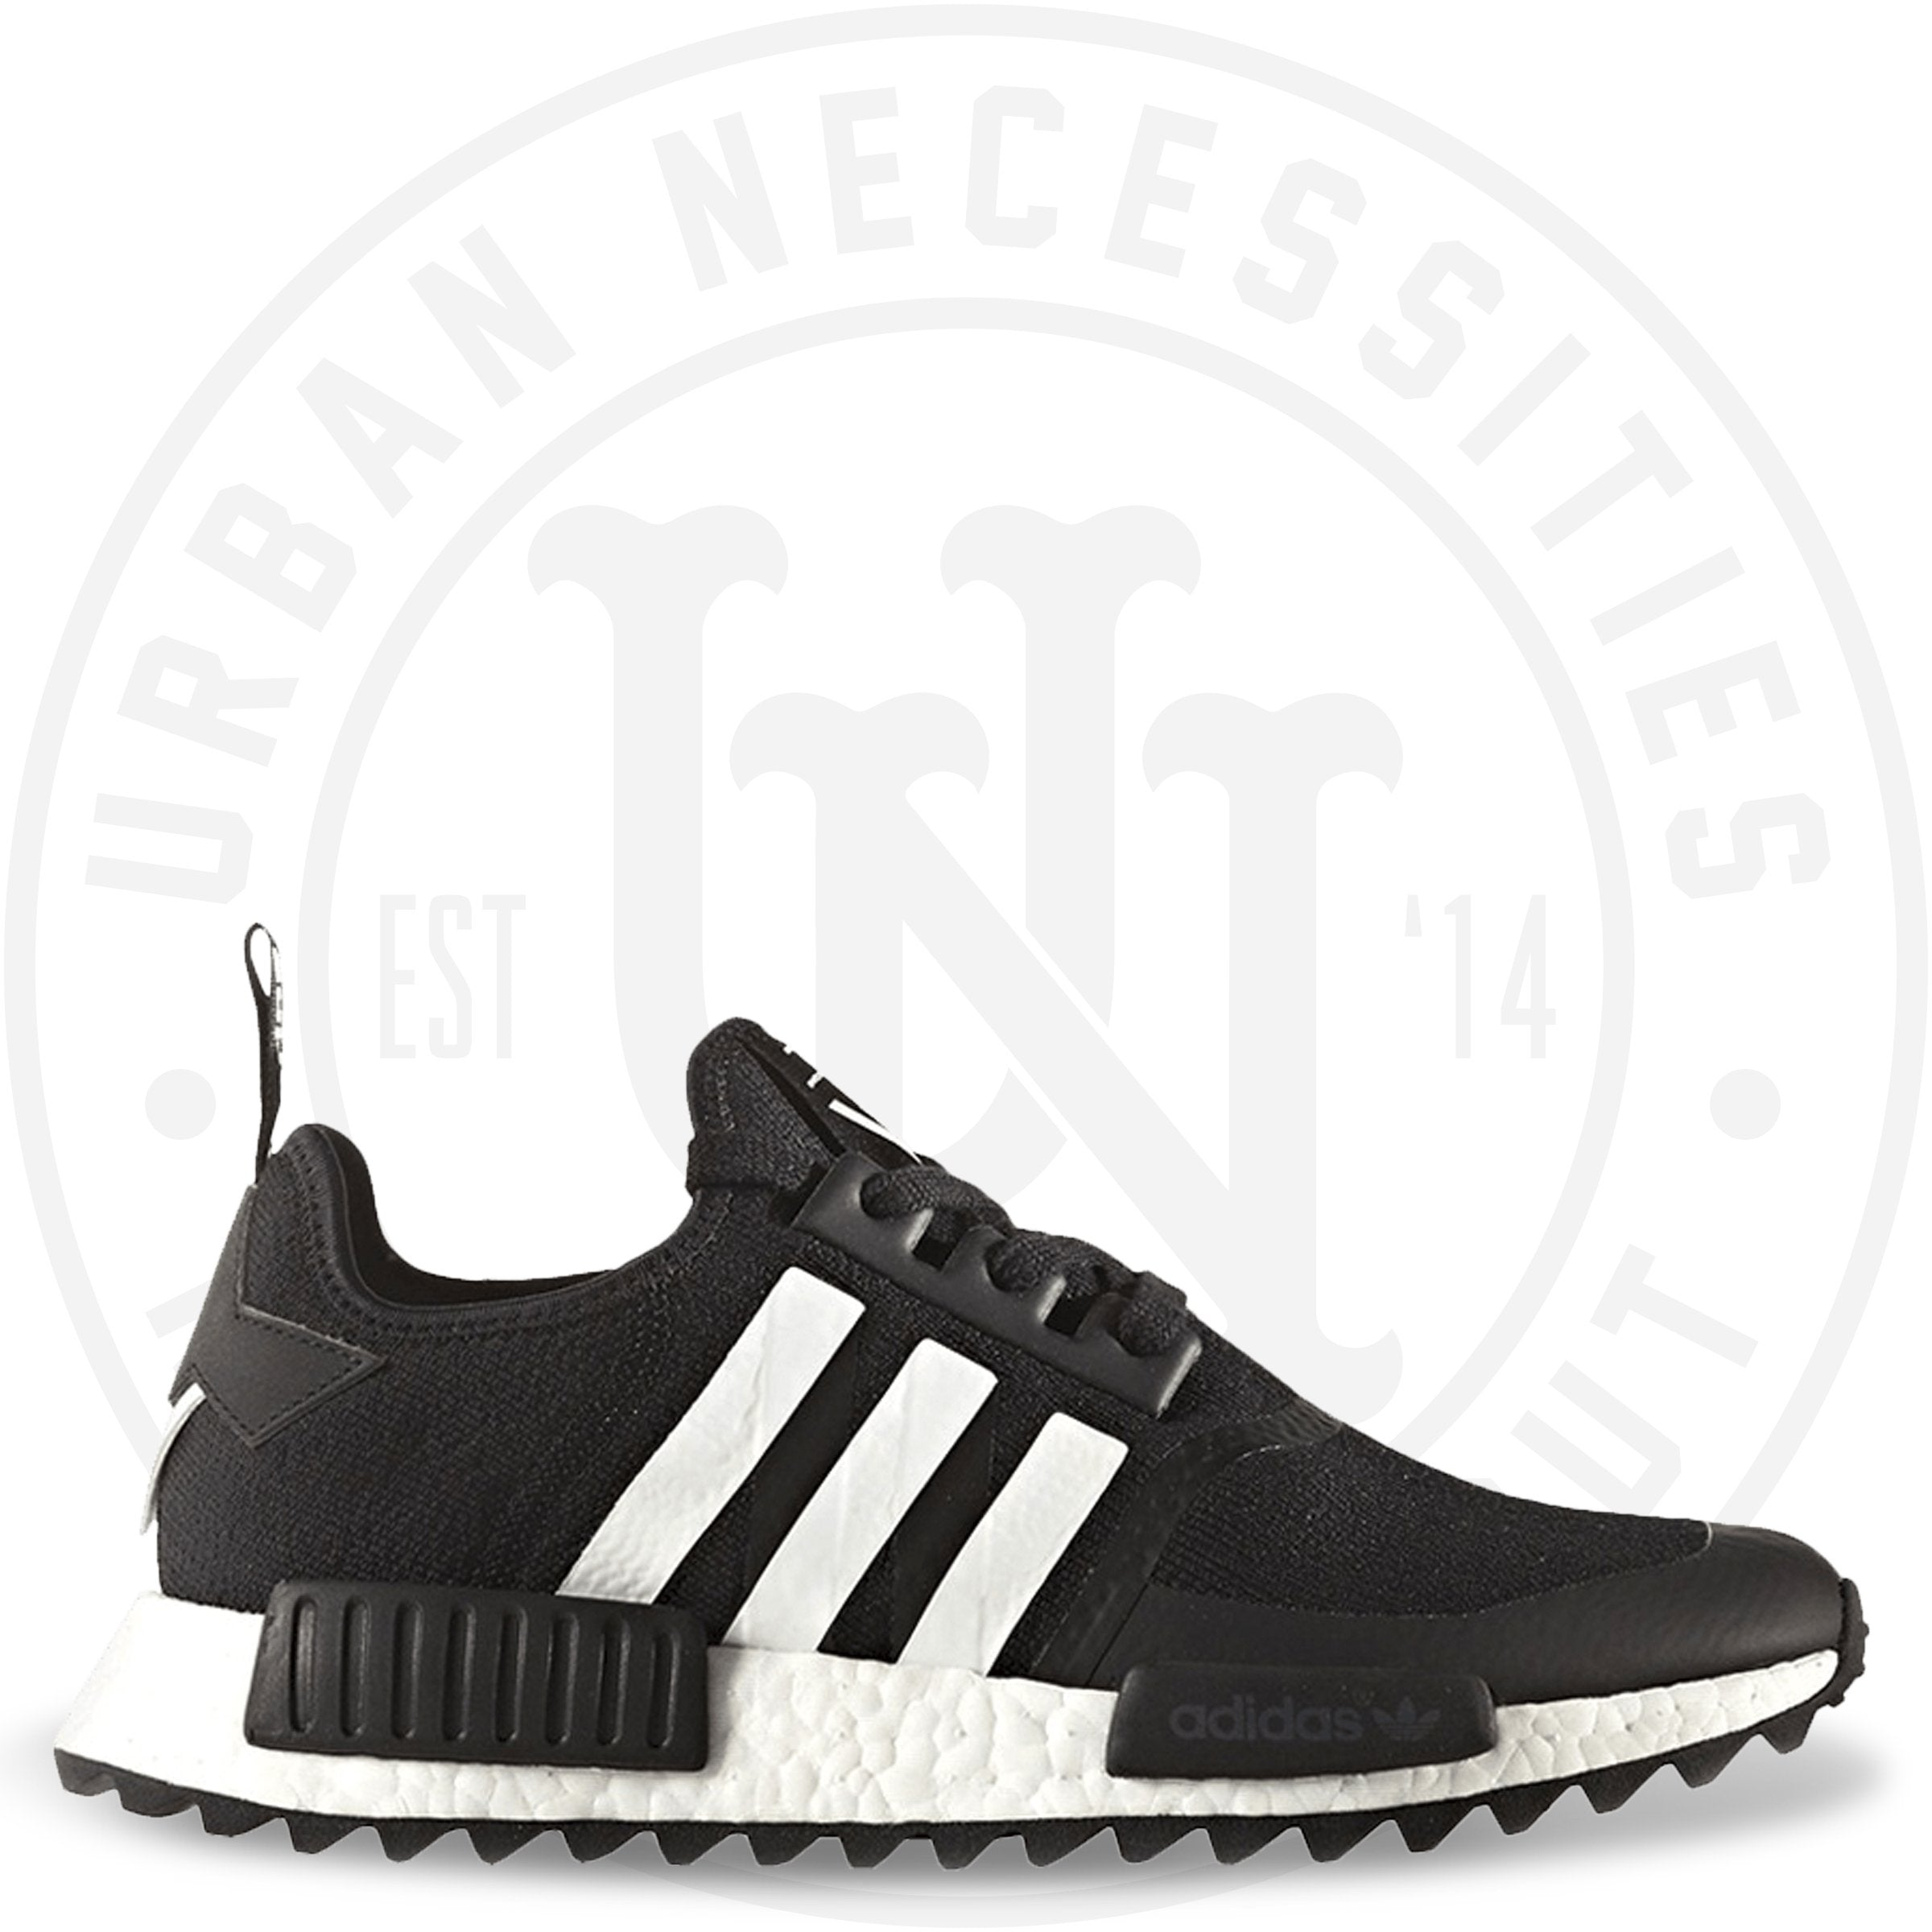 huge discount 06d8a 767cd White Mountaineering x NMD Trail Black - BA7518 – Urban ...